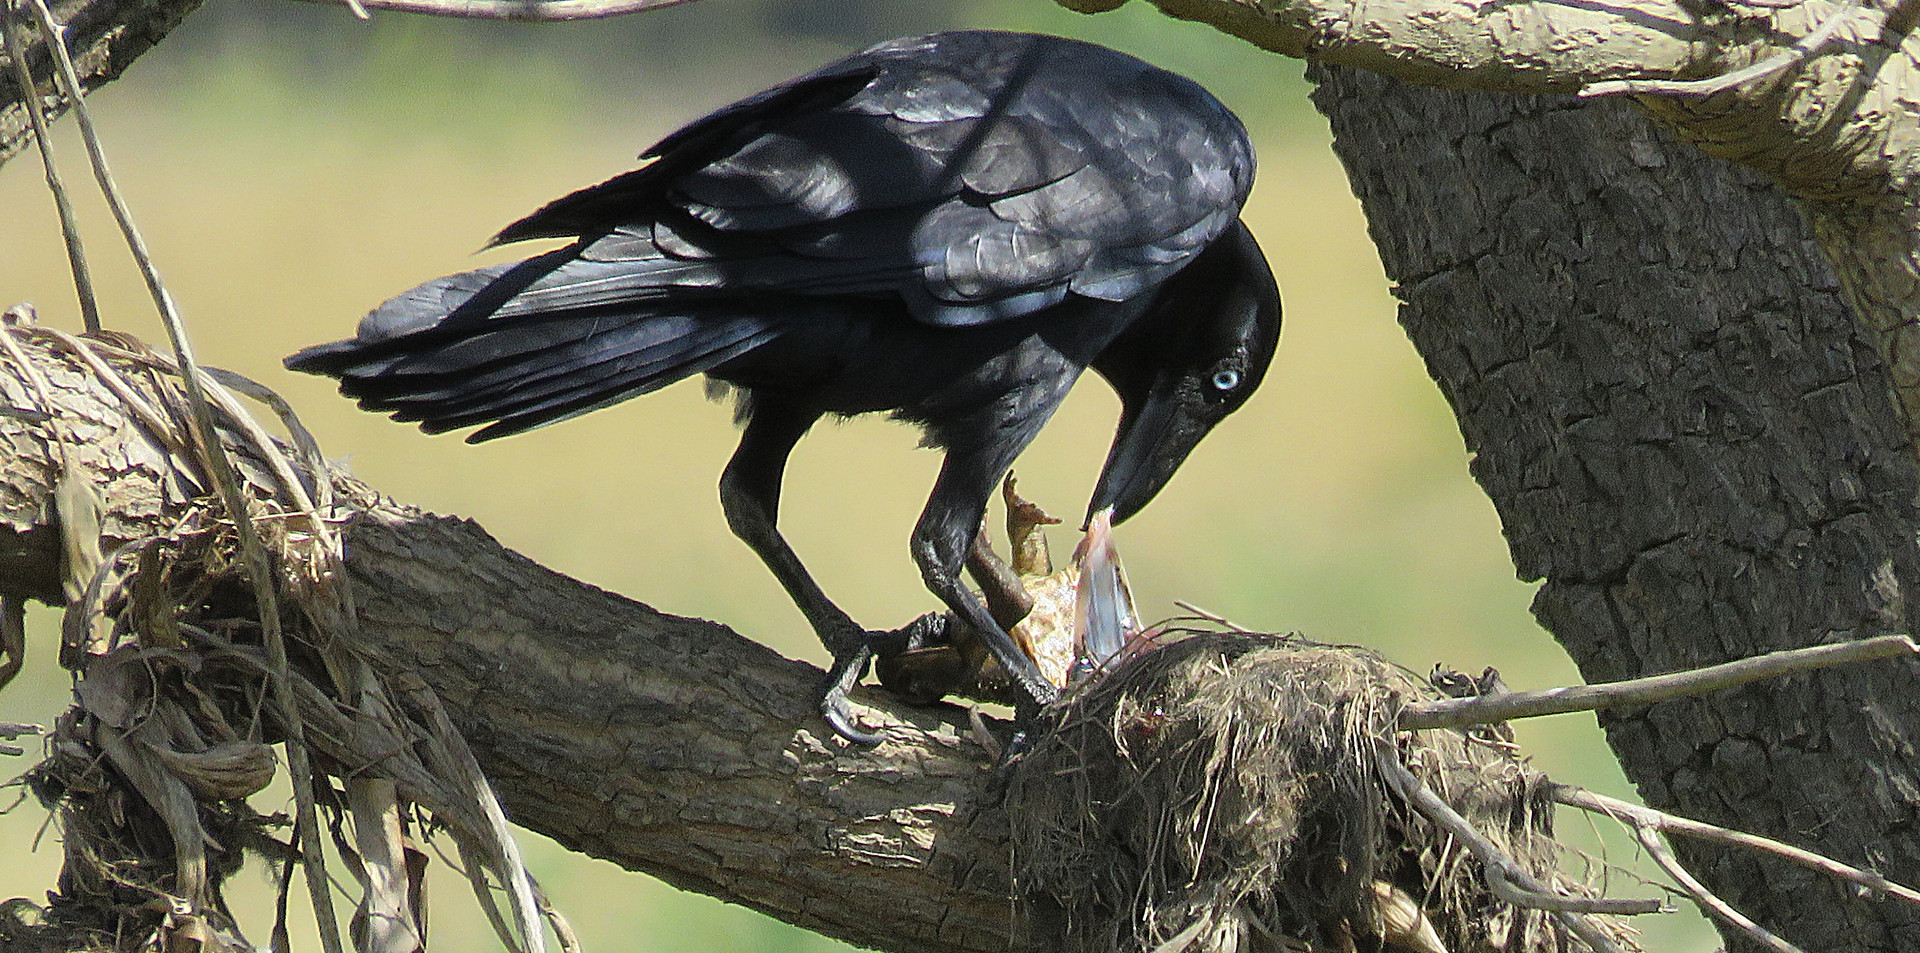 Adult Torresian Crow feeding on cane toad